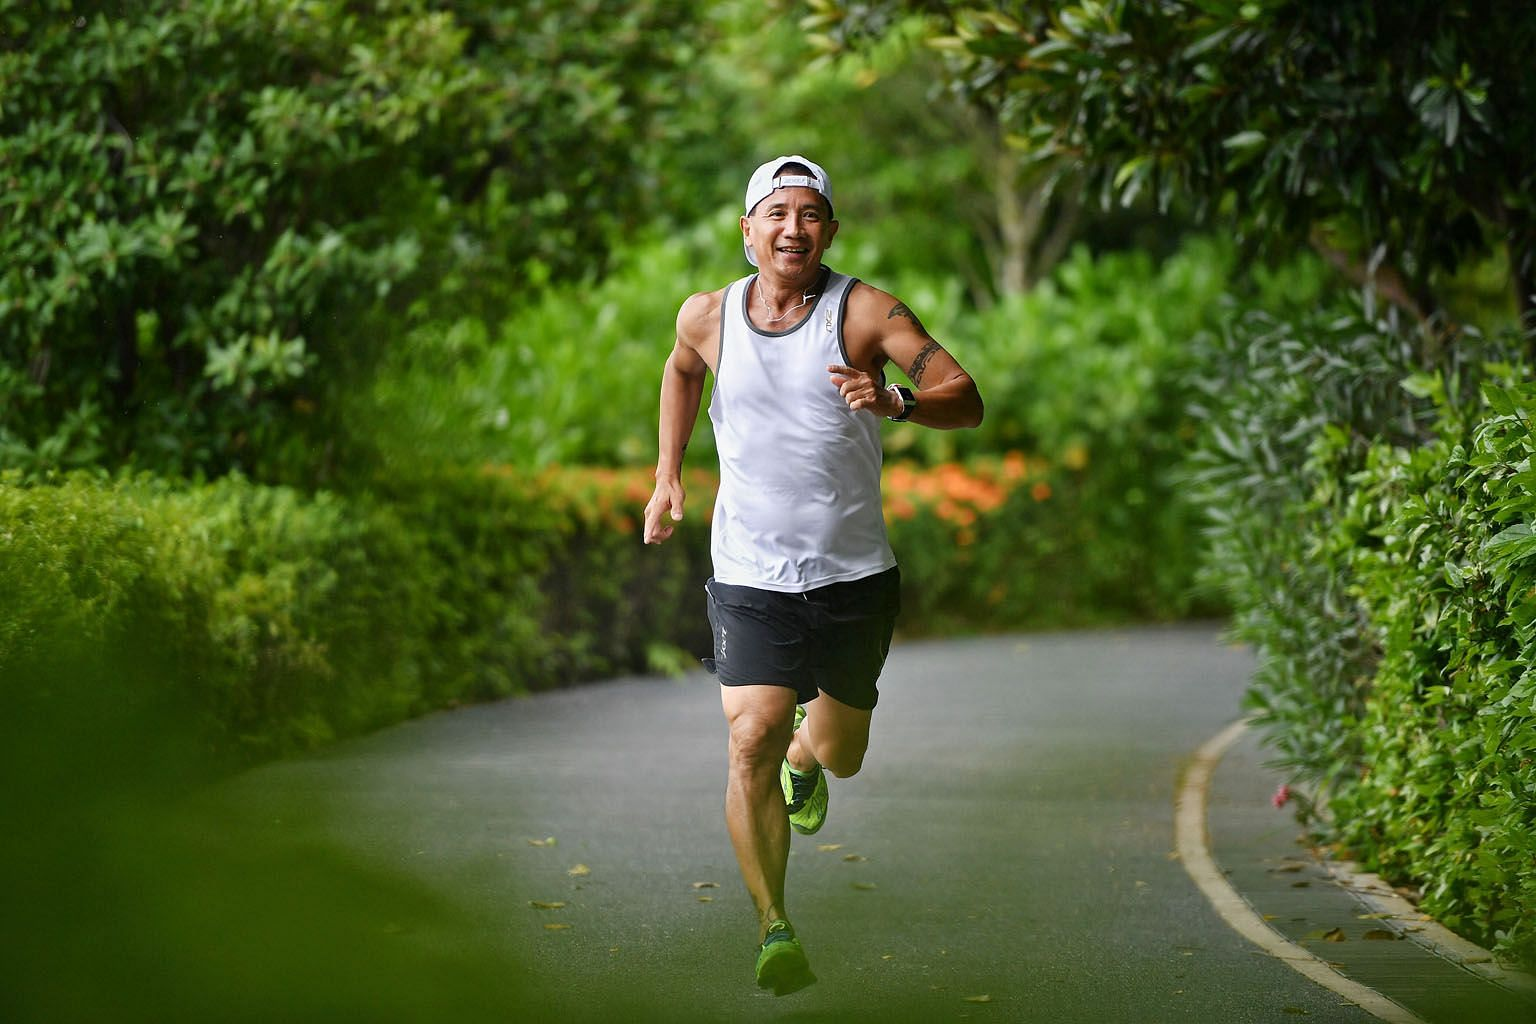 Raymond Howe remains an avid runner while battling the effects of cancer, often participating in marathons and triathlons. He will be taking part in this year's The Straits Times Run, like he has done since the inaugural edition in 2013. ST PHOTO: CH